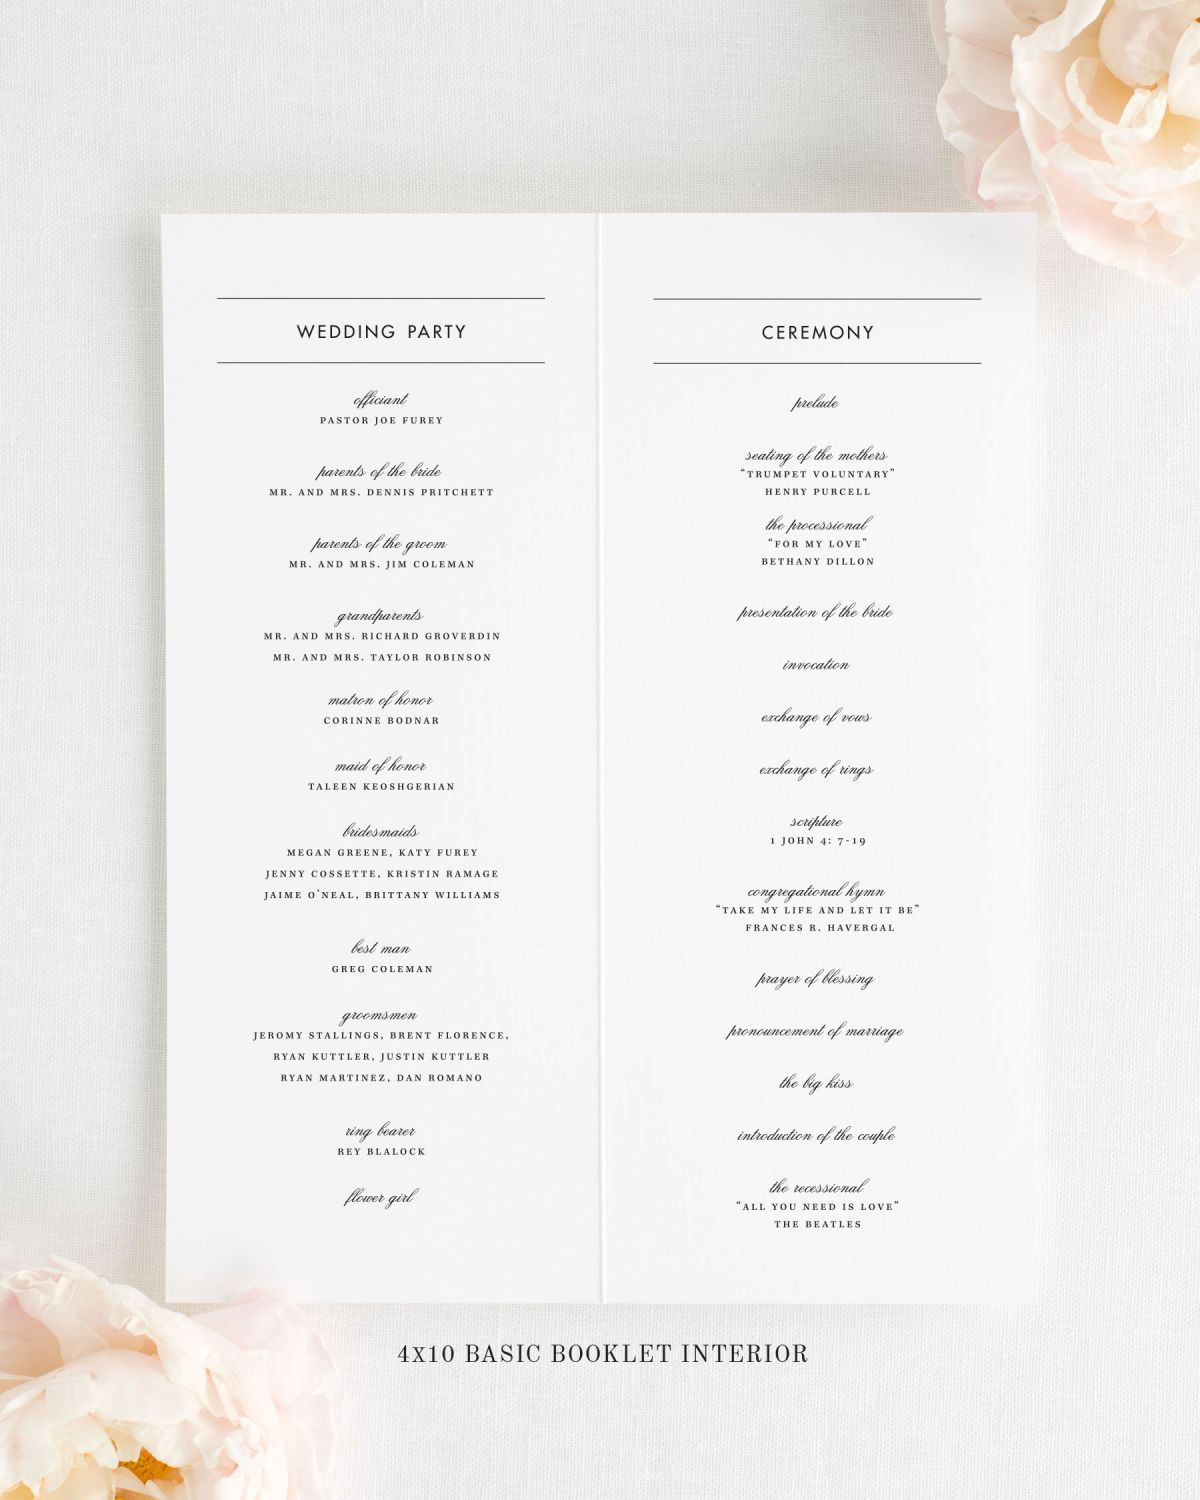 4x10 Wedding Program Interior